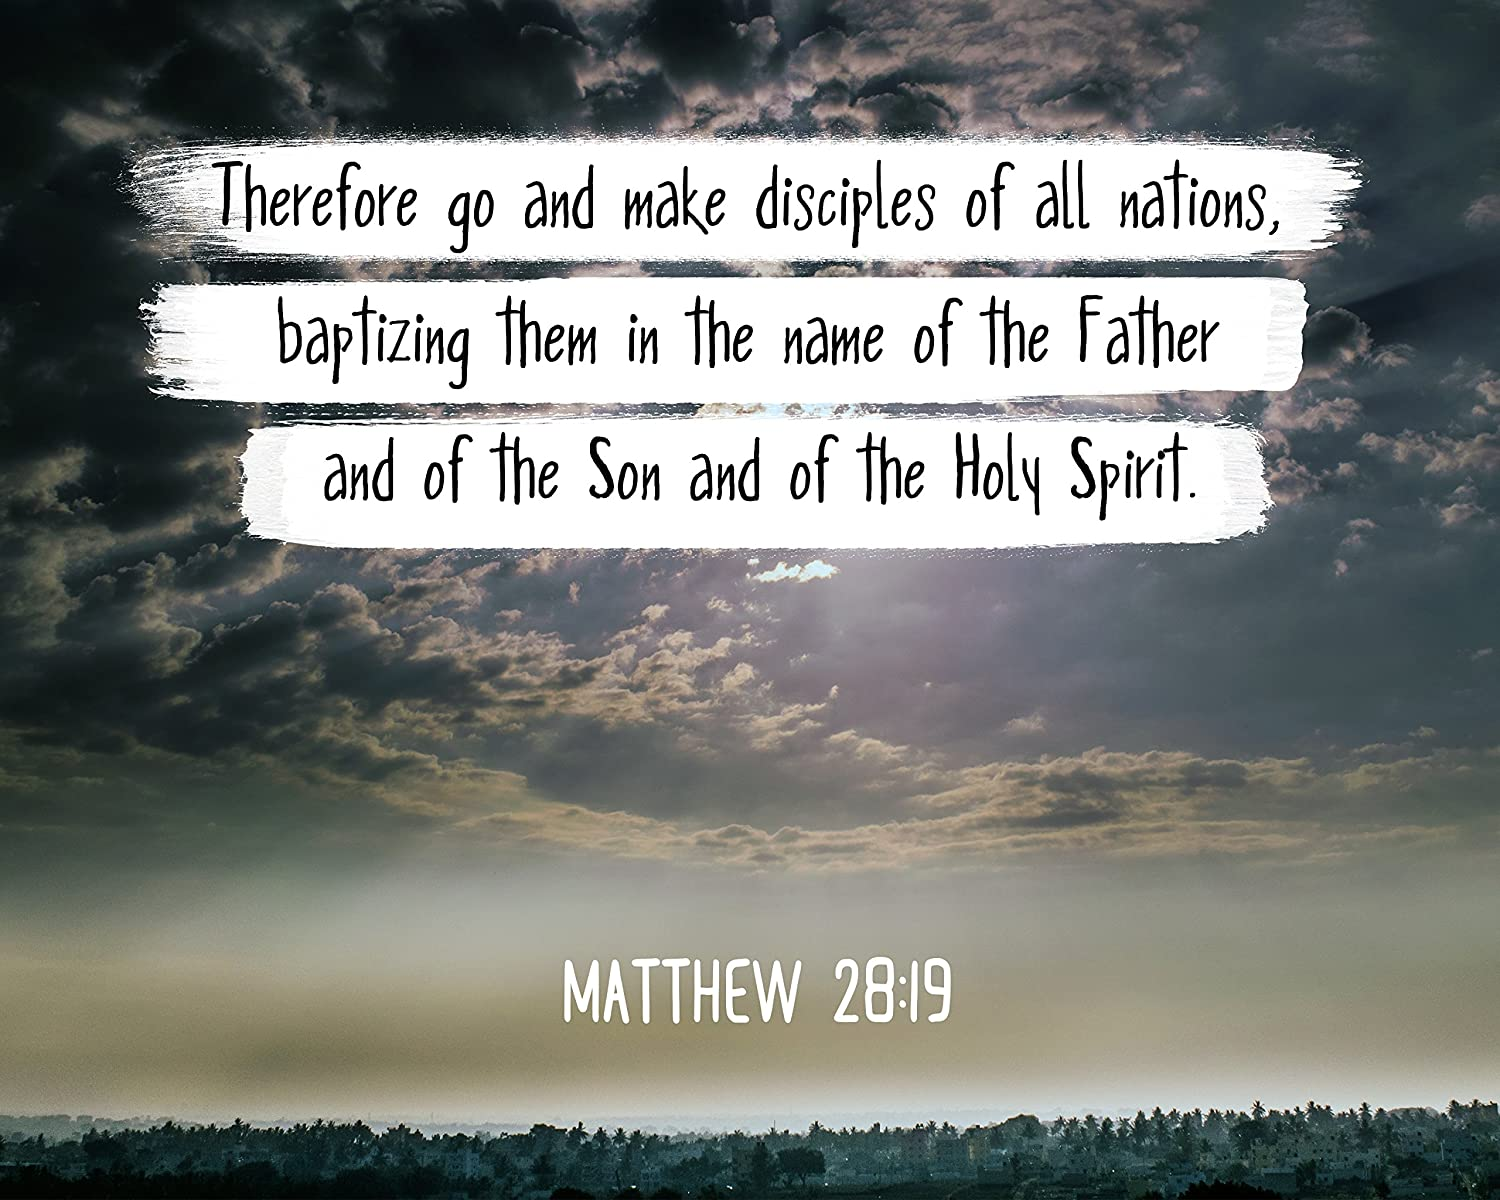 Amazon.com: Bible Verse Wall Art Therefore go and Make Disciples of All.  Matthew 28:19 Christian Poster Framed Picture Wall Decor Print | Spiritual  Inspirational Verses and Quotes (8x10 Unframed Photo): Posters &